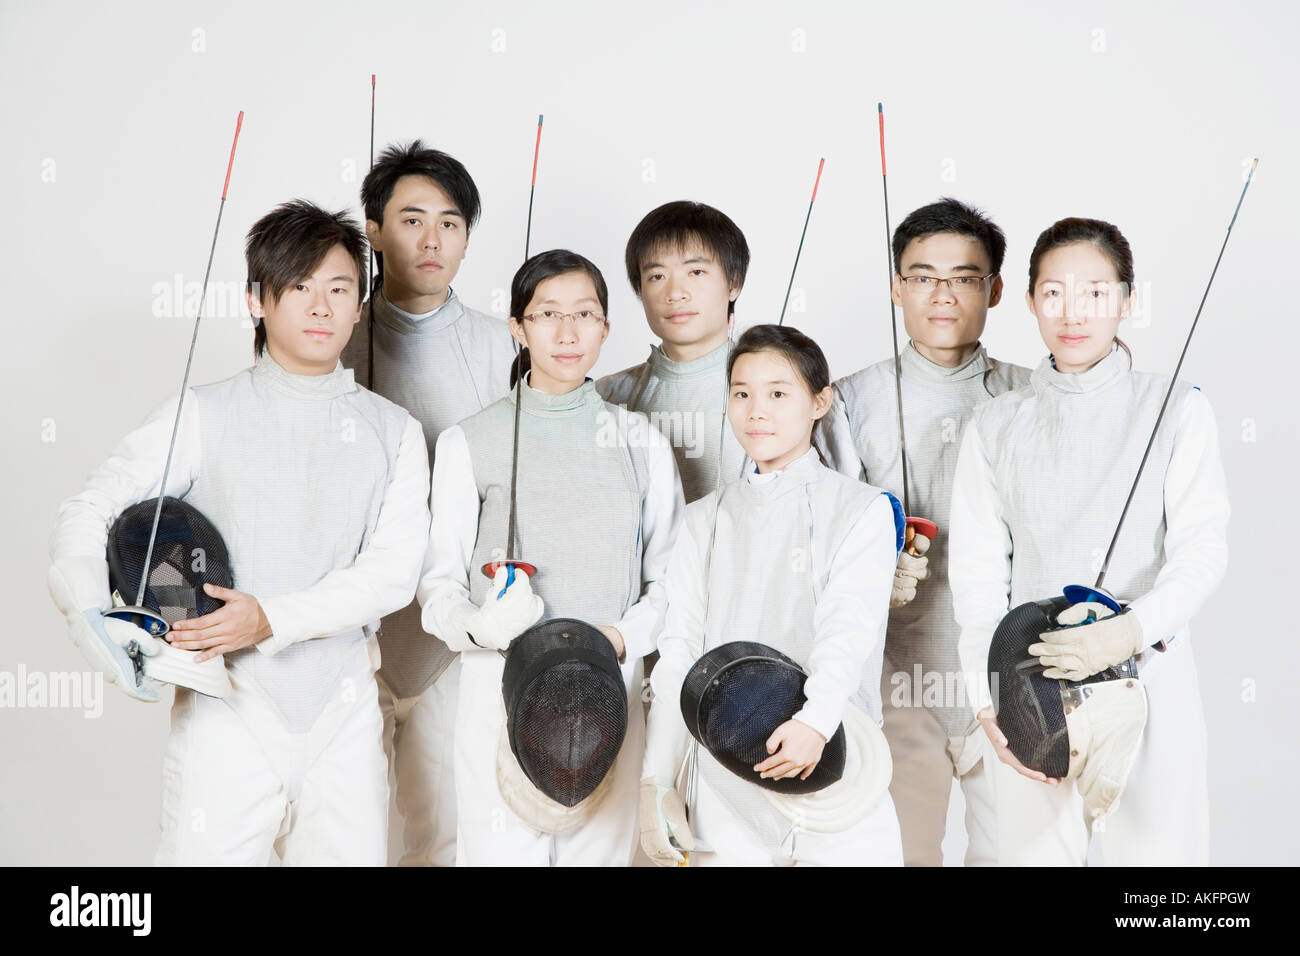 Portrait of a group of fencers standing together